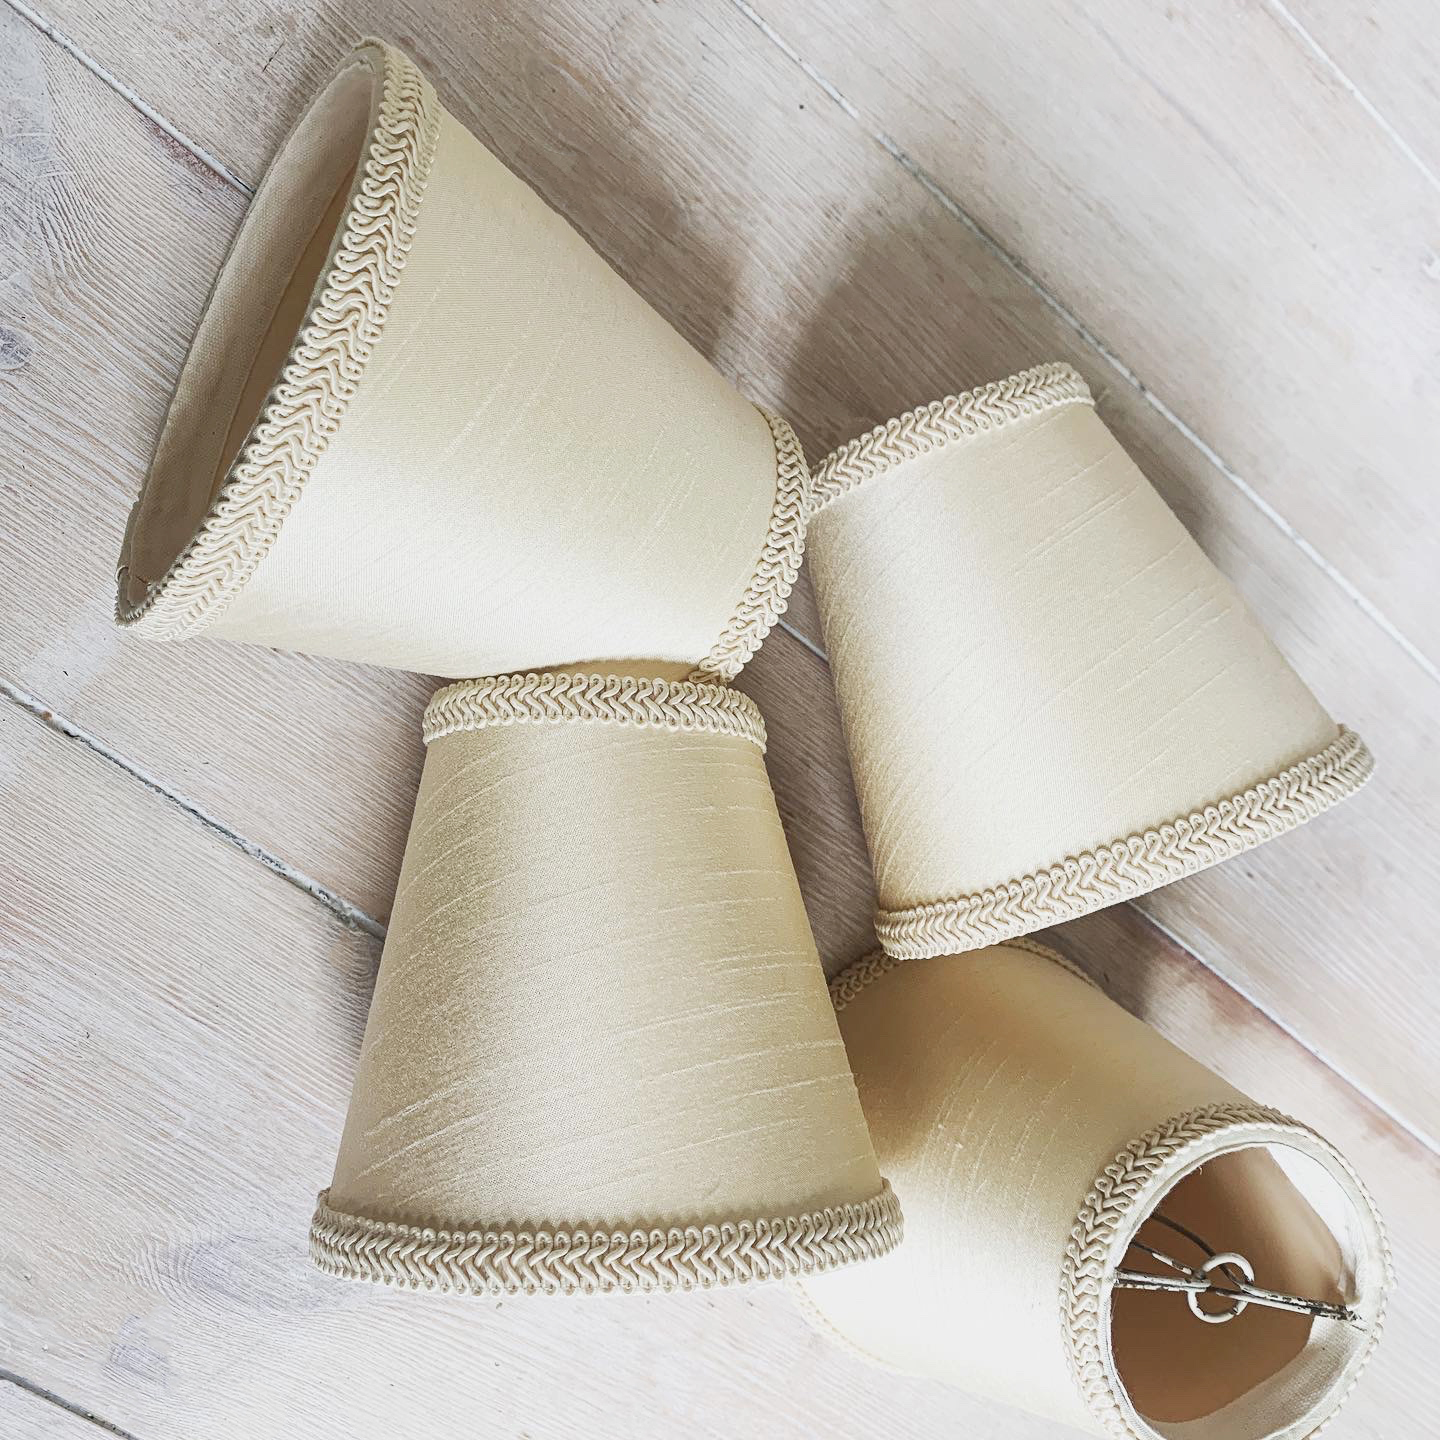 Clip style lampshades